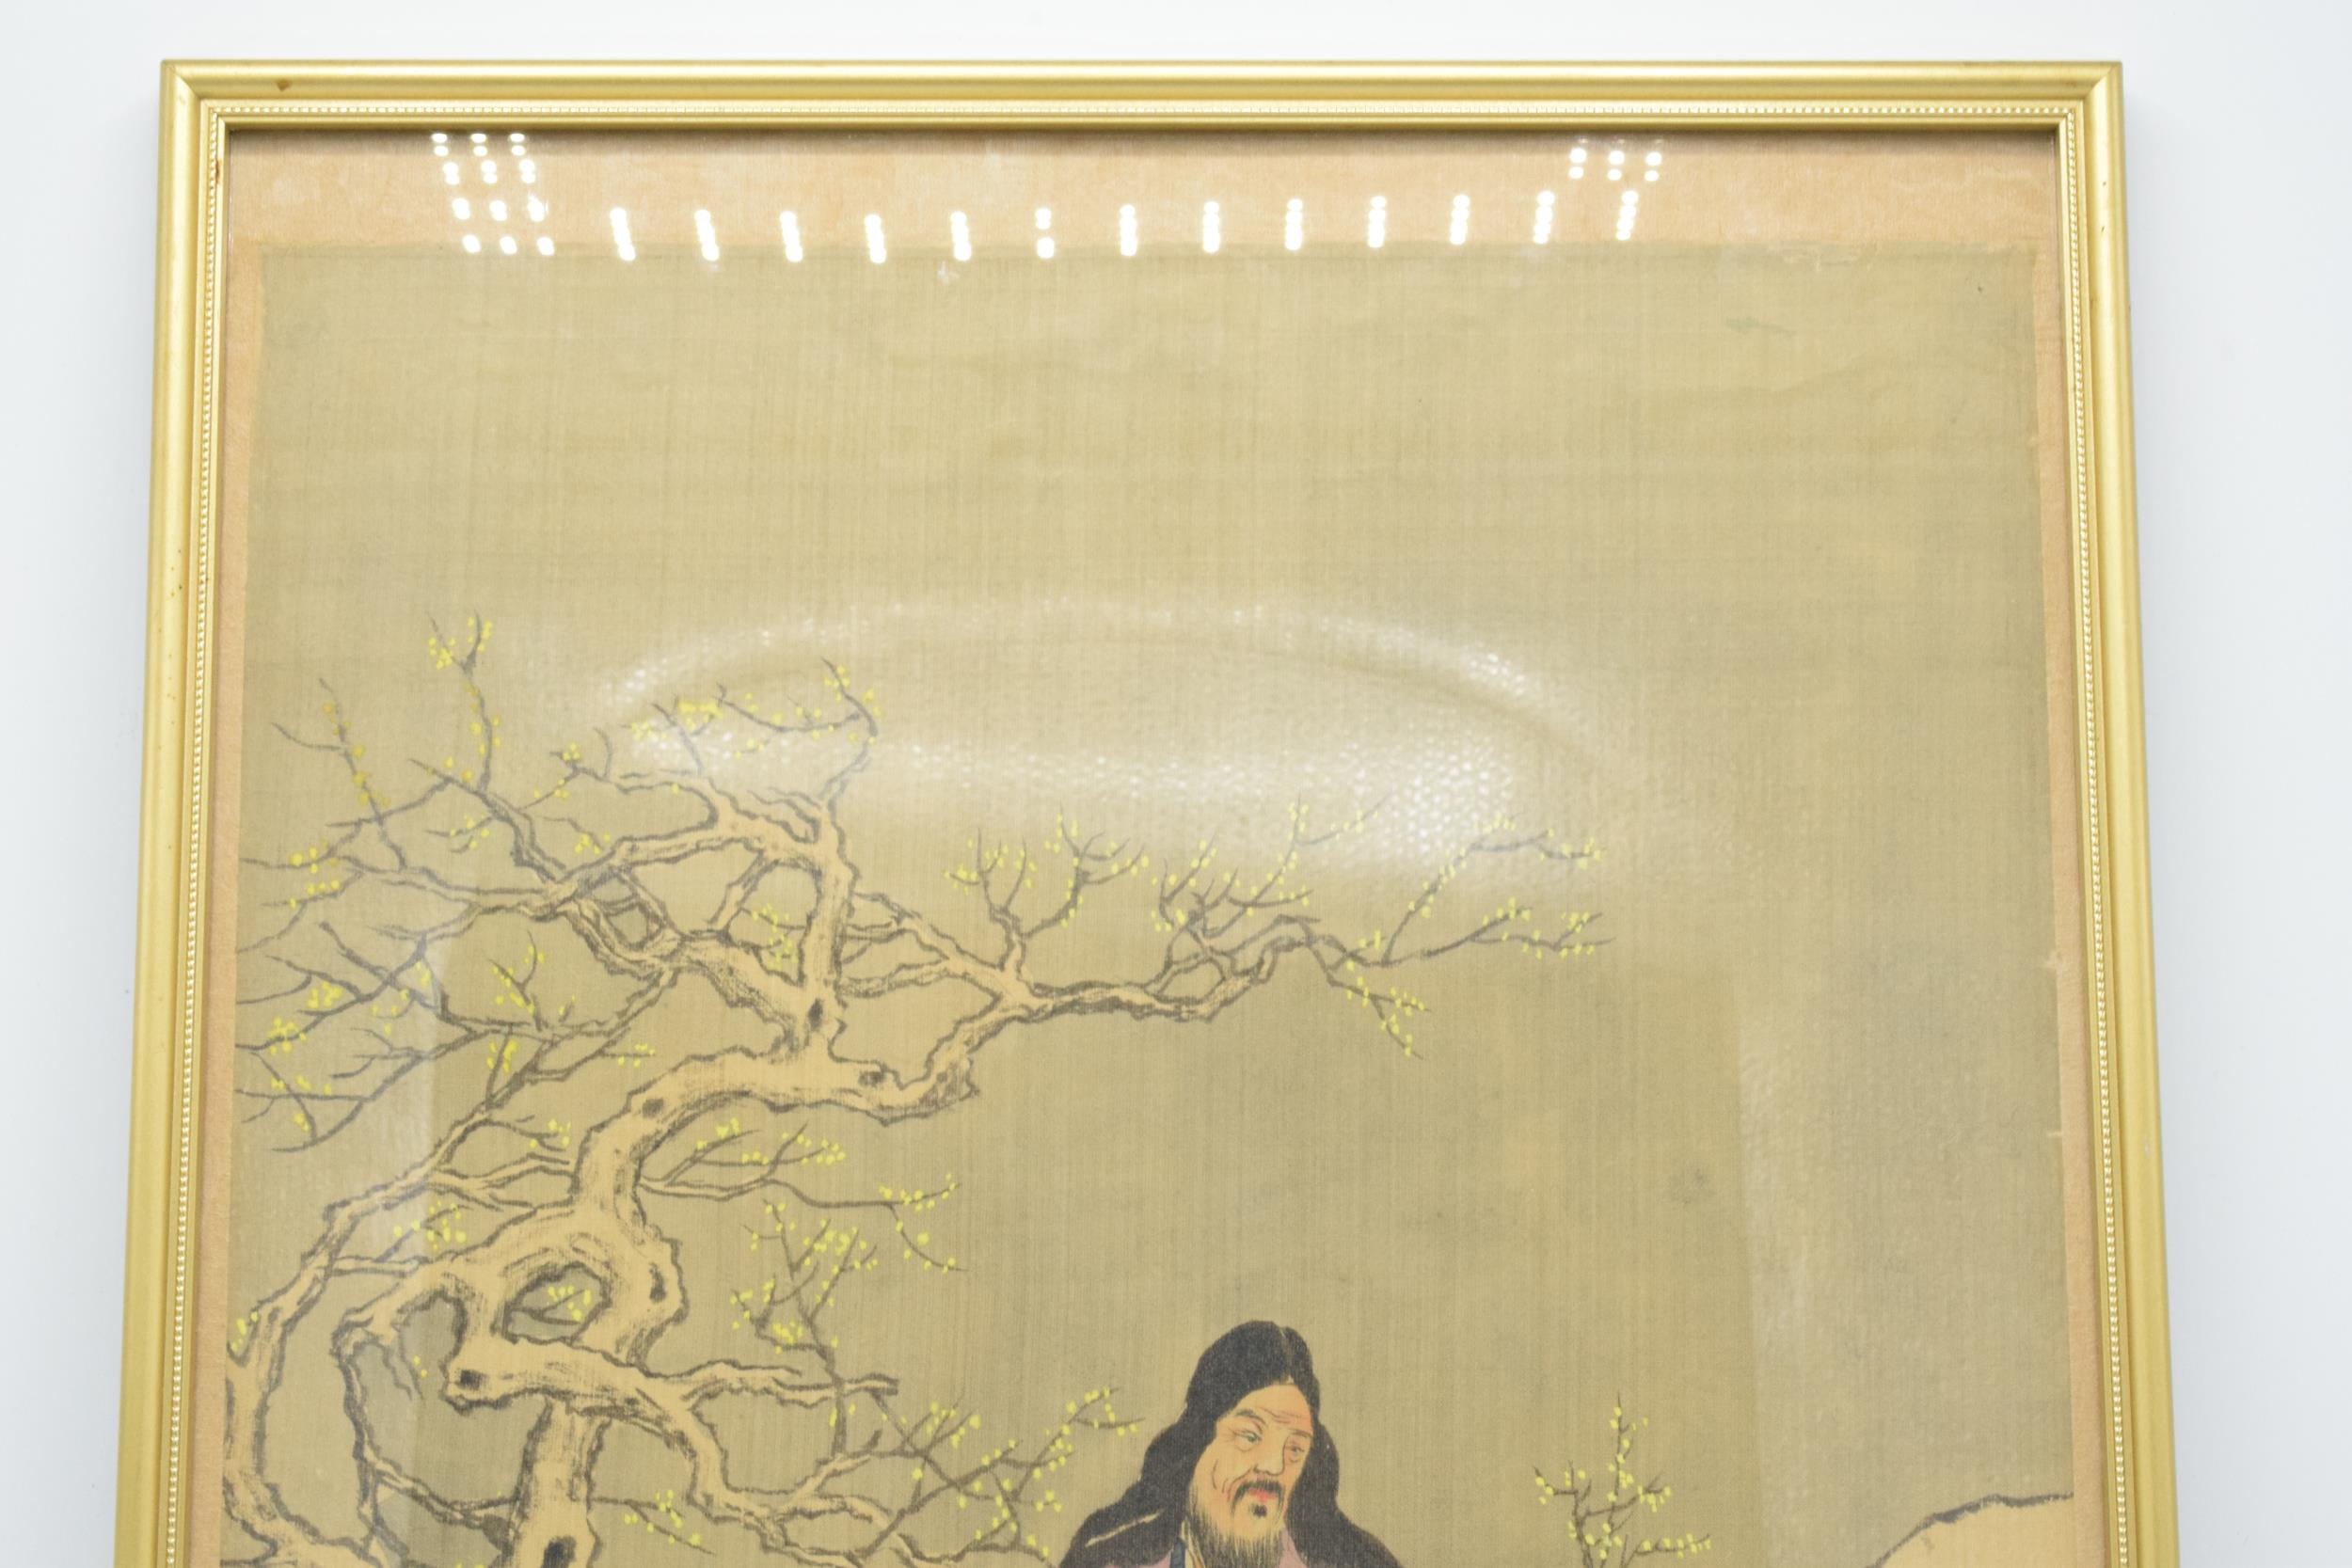 Meiji Japanese woodblock print depicting snowy mountain scene with man and young girl in front of - Image 4 of 6